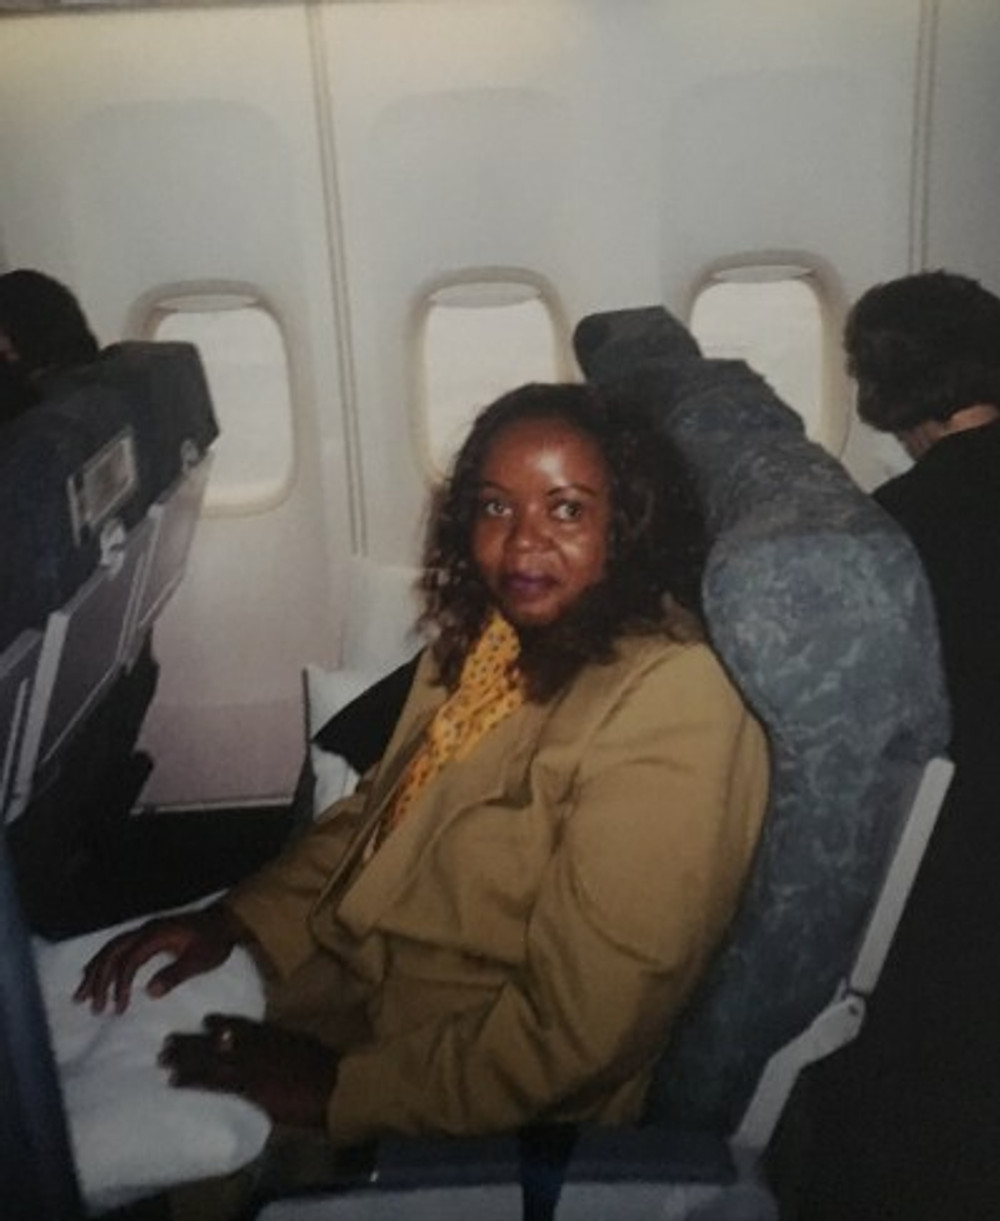 On a plane ride to Canada to visit my dear son and daughter, 2002.